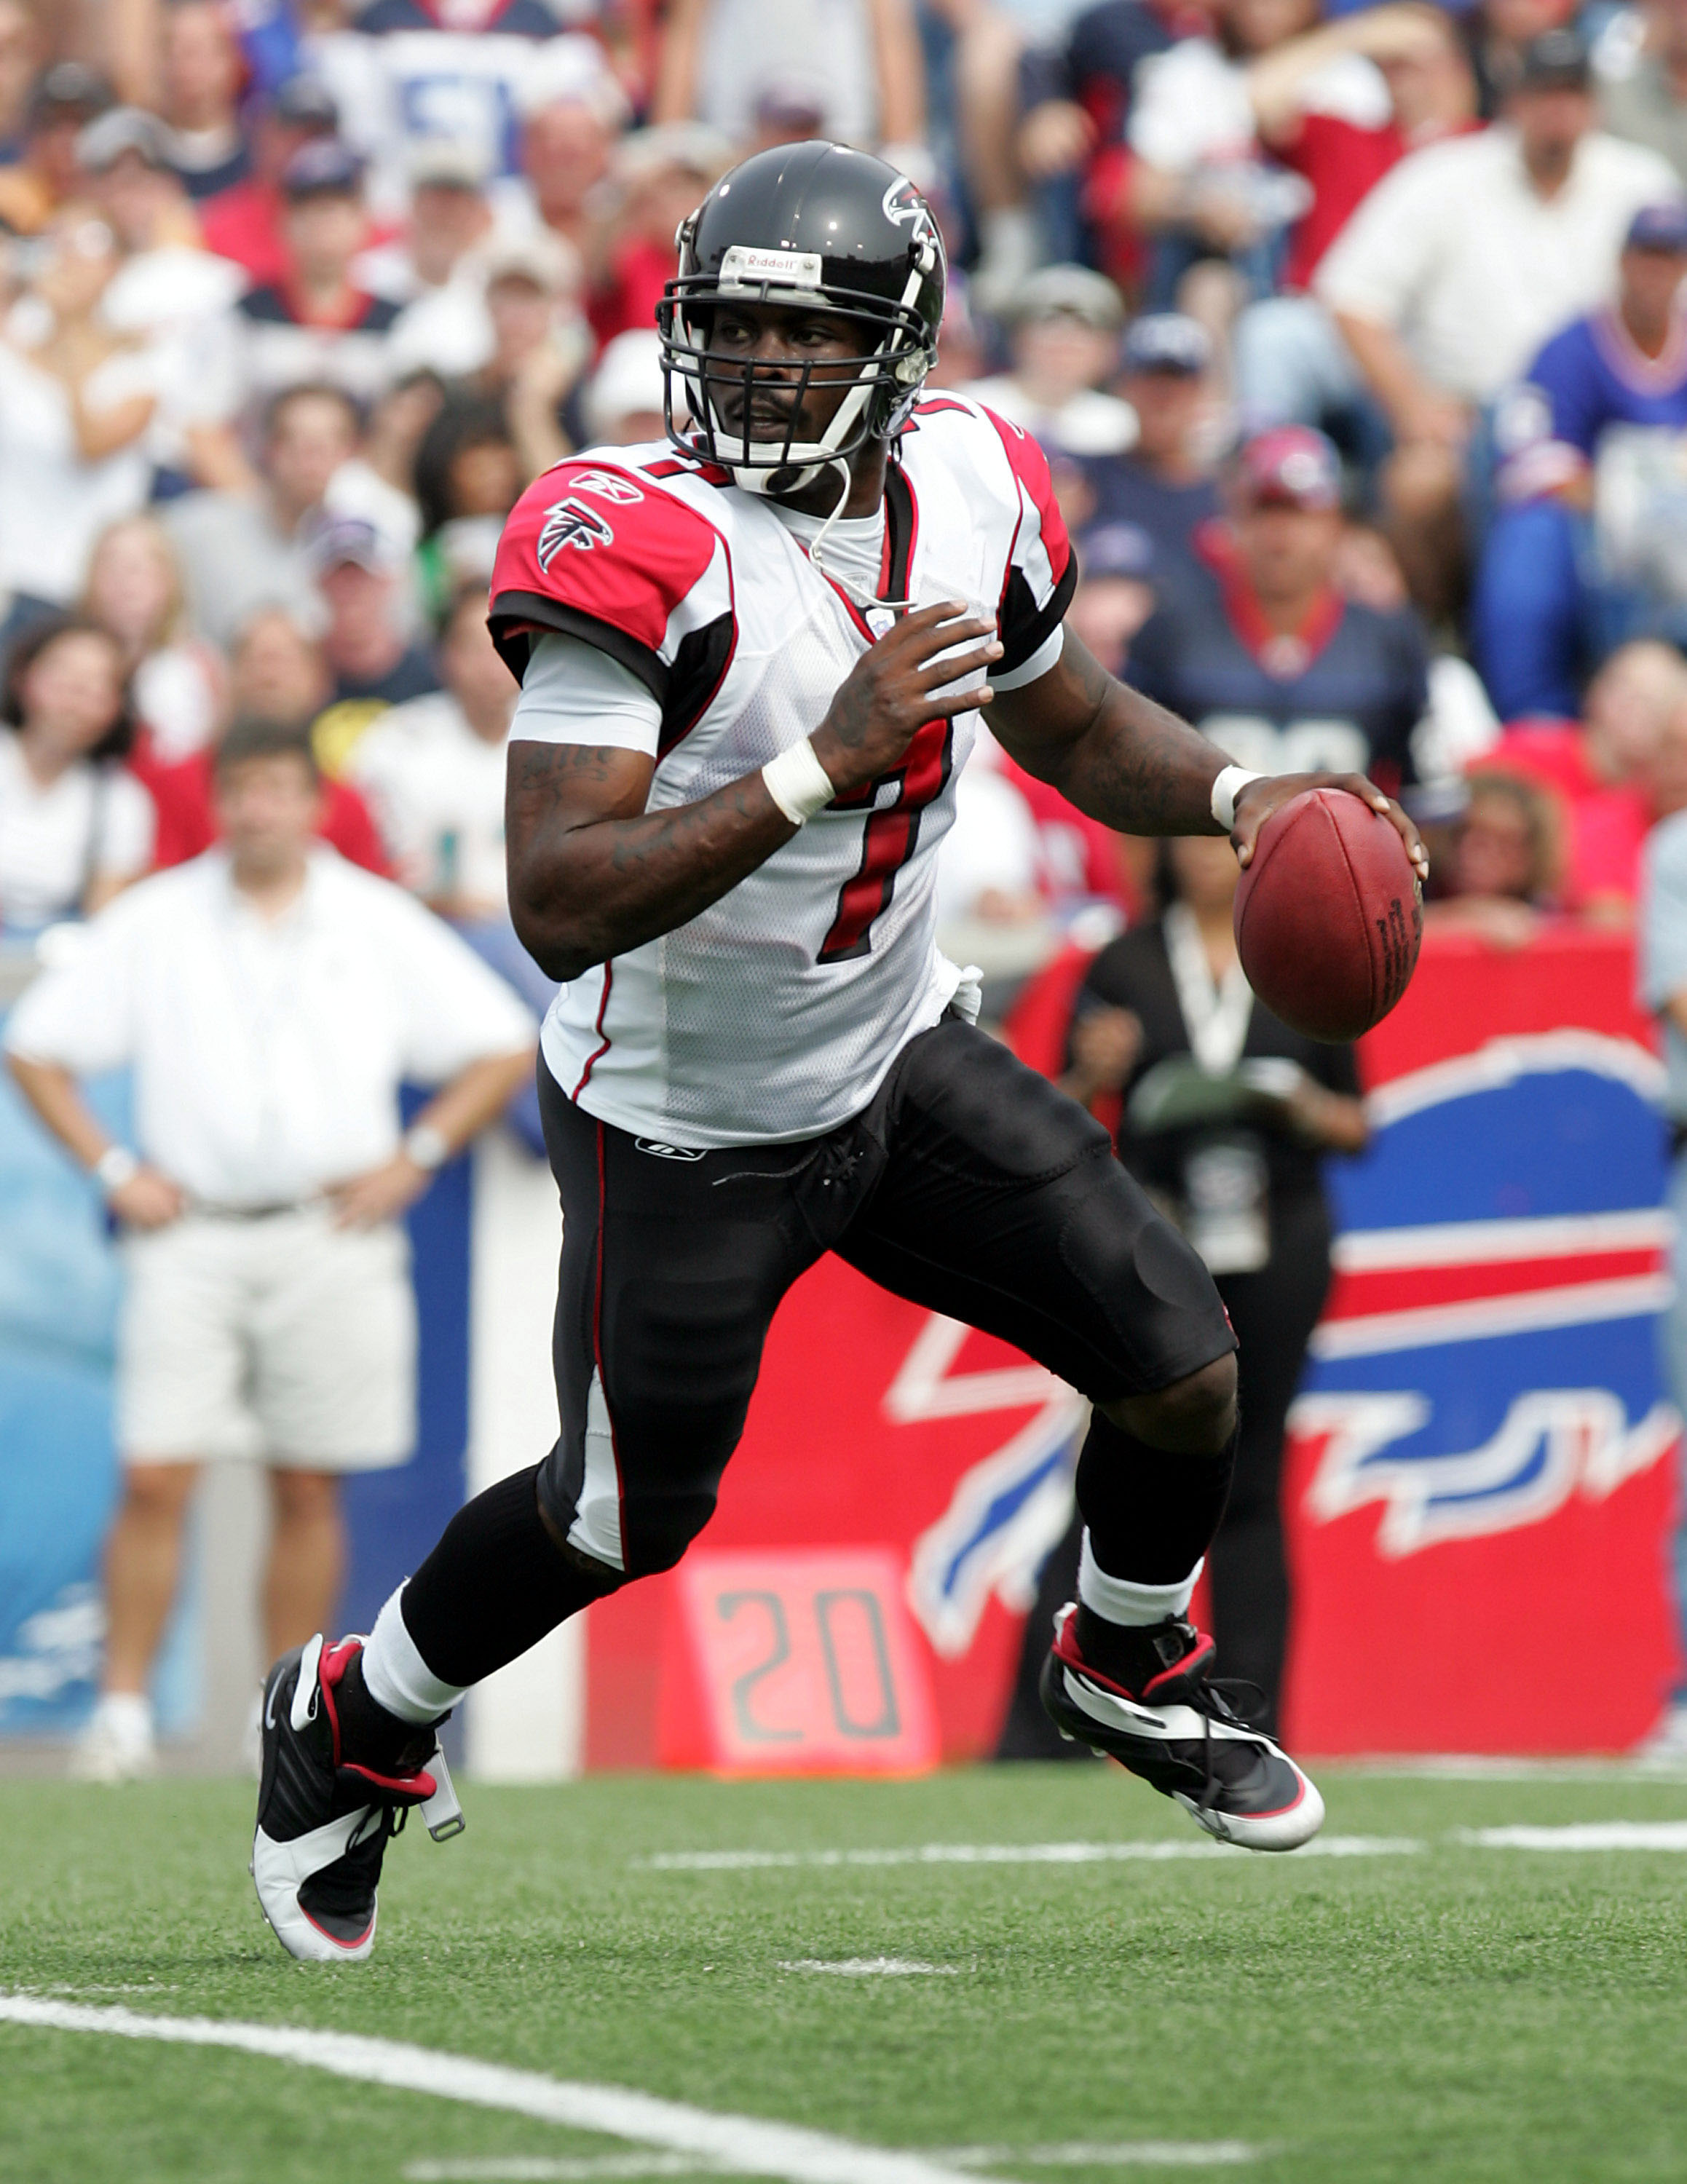 Atlanta Falcons quarterback Michael Vick (7) looks downfield for a receiver during the game against the Buffalo Bills at Ralph Wilson Stadium in Orchard Park, New York. on Sept. 25, 2005.